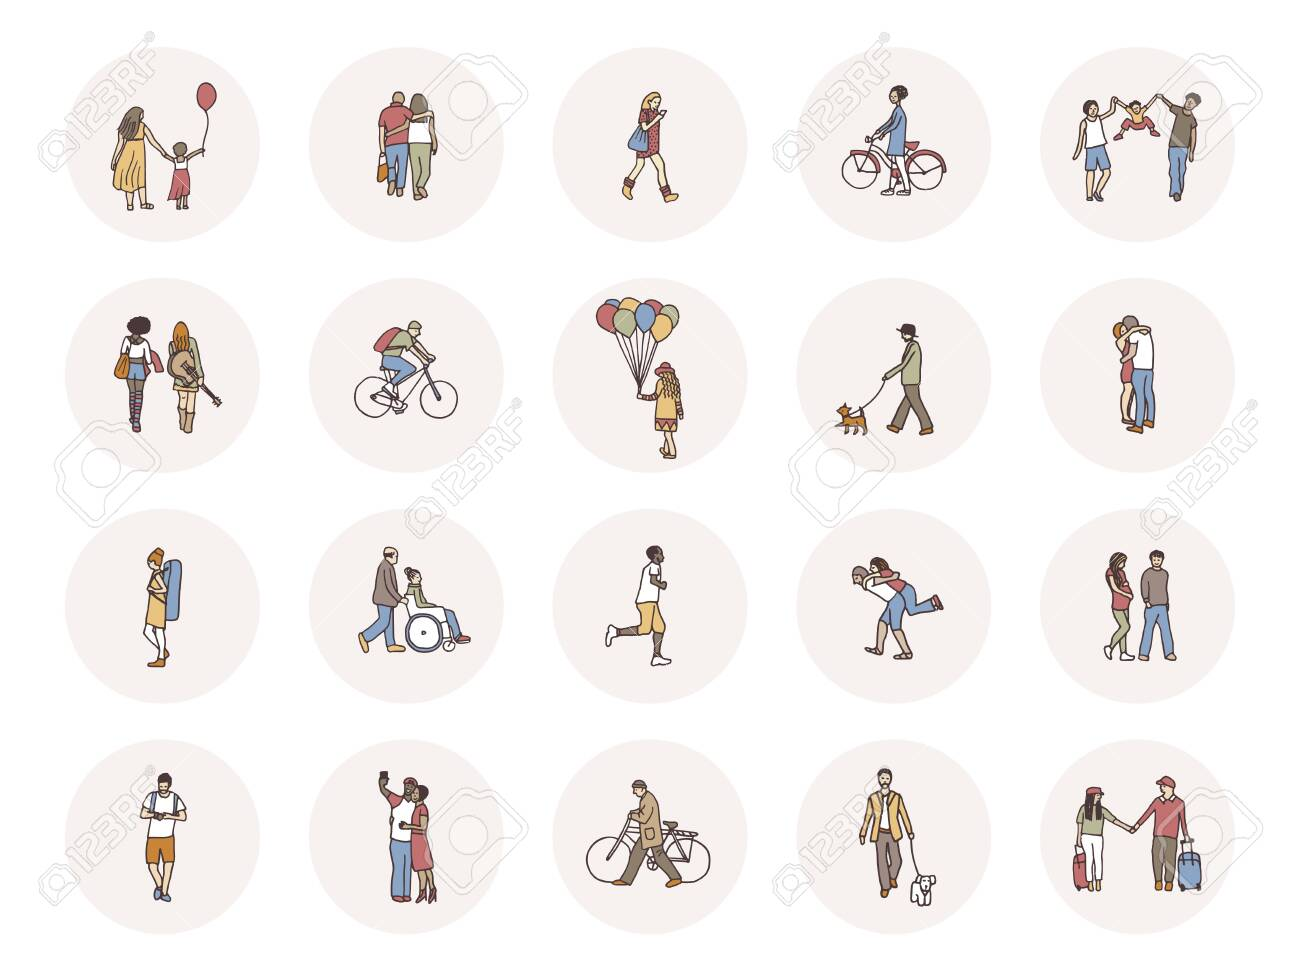 Social media icons with tiny pedestrians walking through the street - 131767107